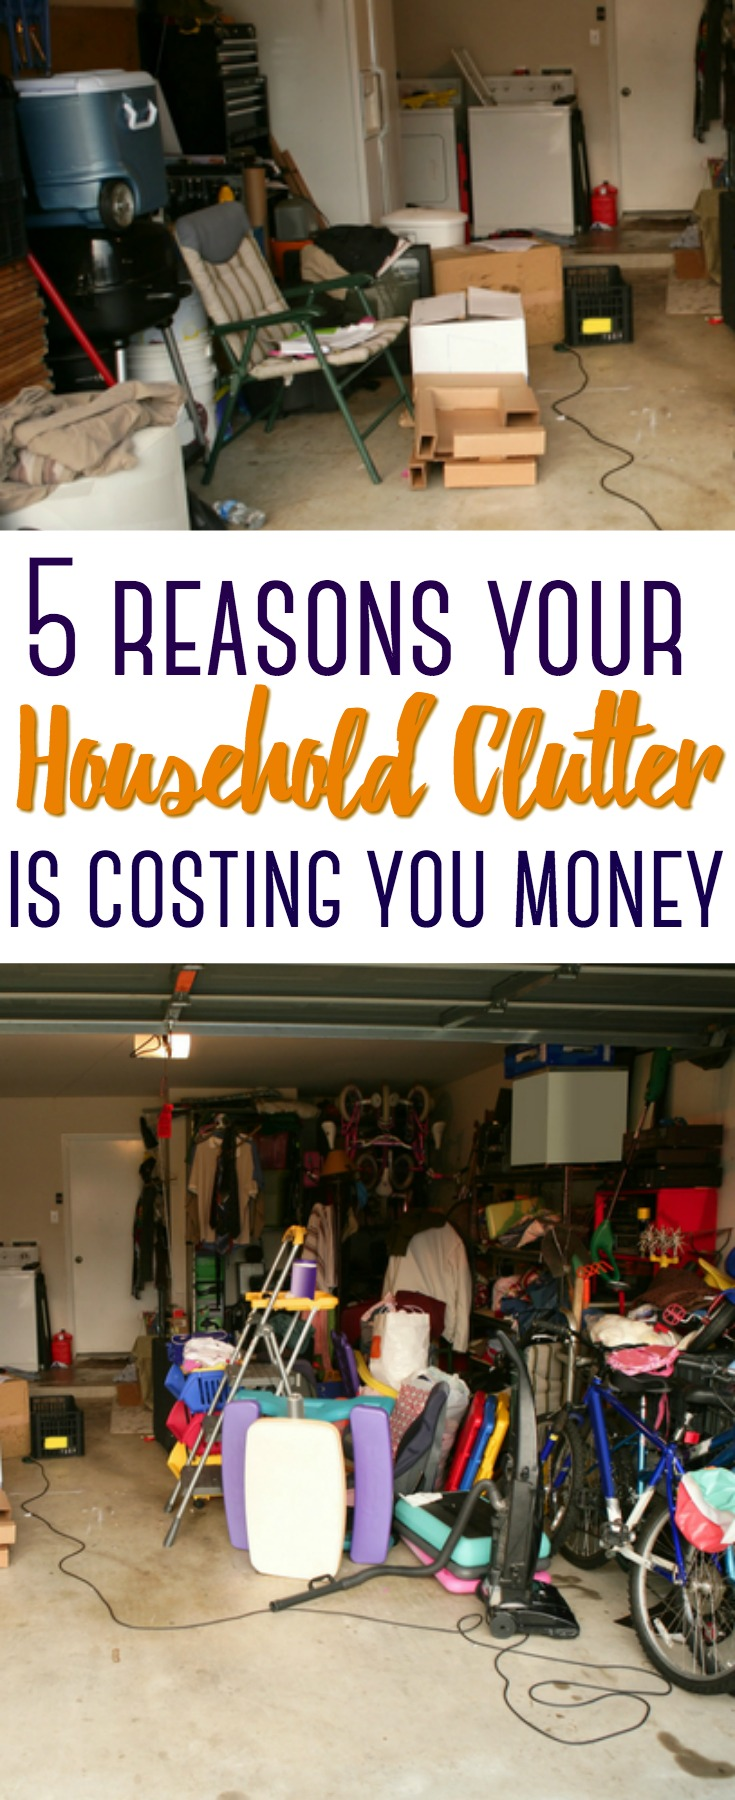 When you have kids and a family, household clutter can be inevitable and costly. Here are 5 reasons your household clutter is costing you money.